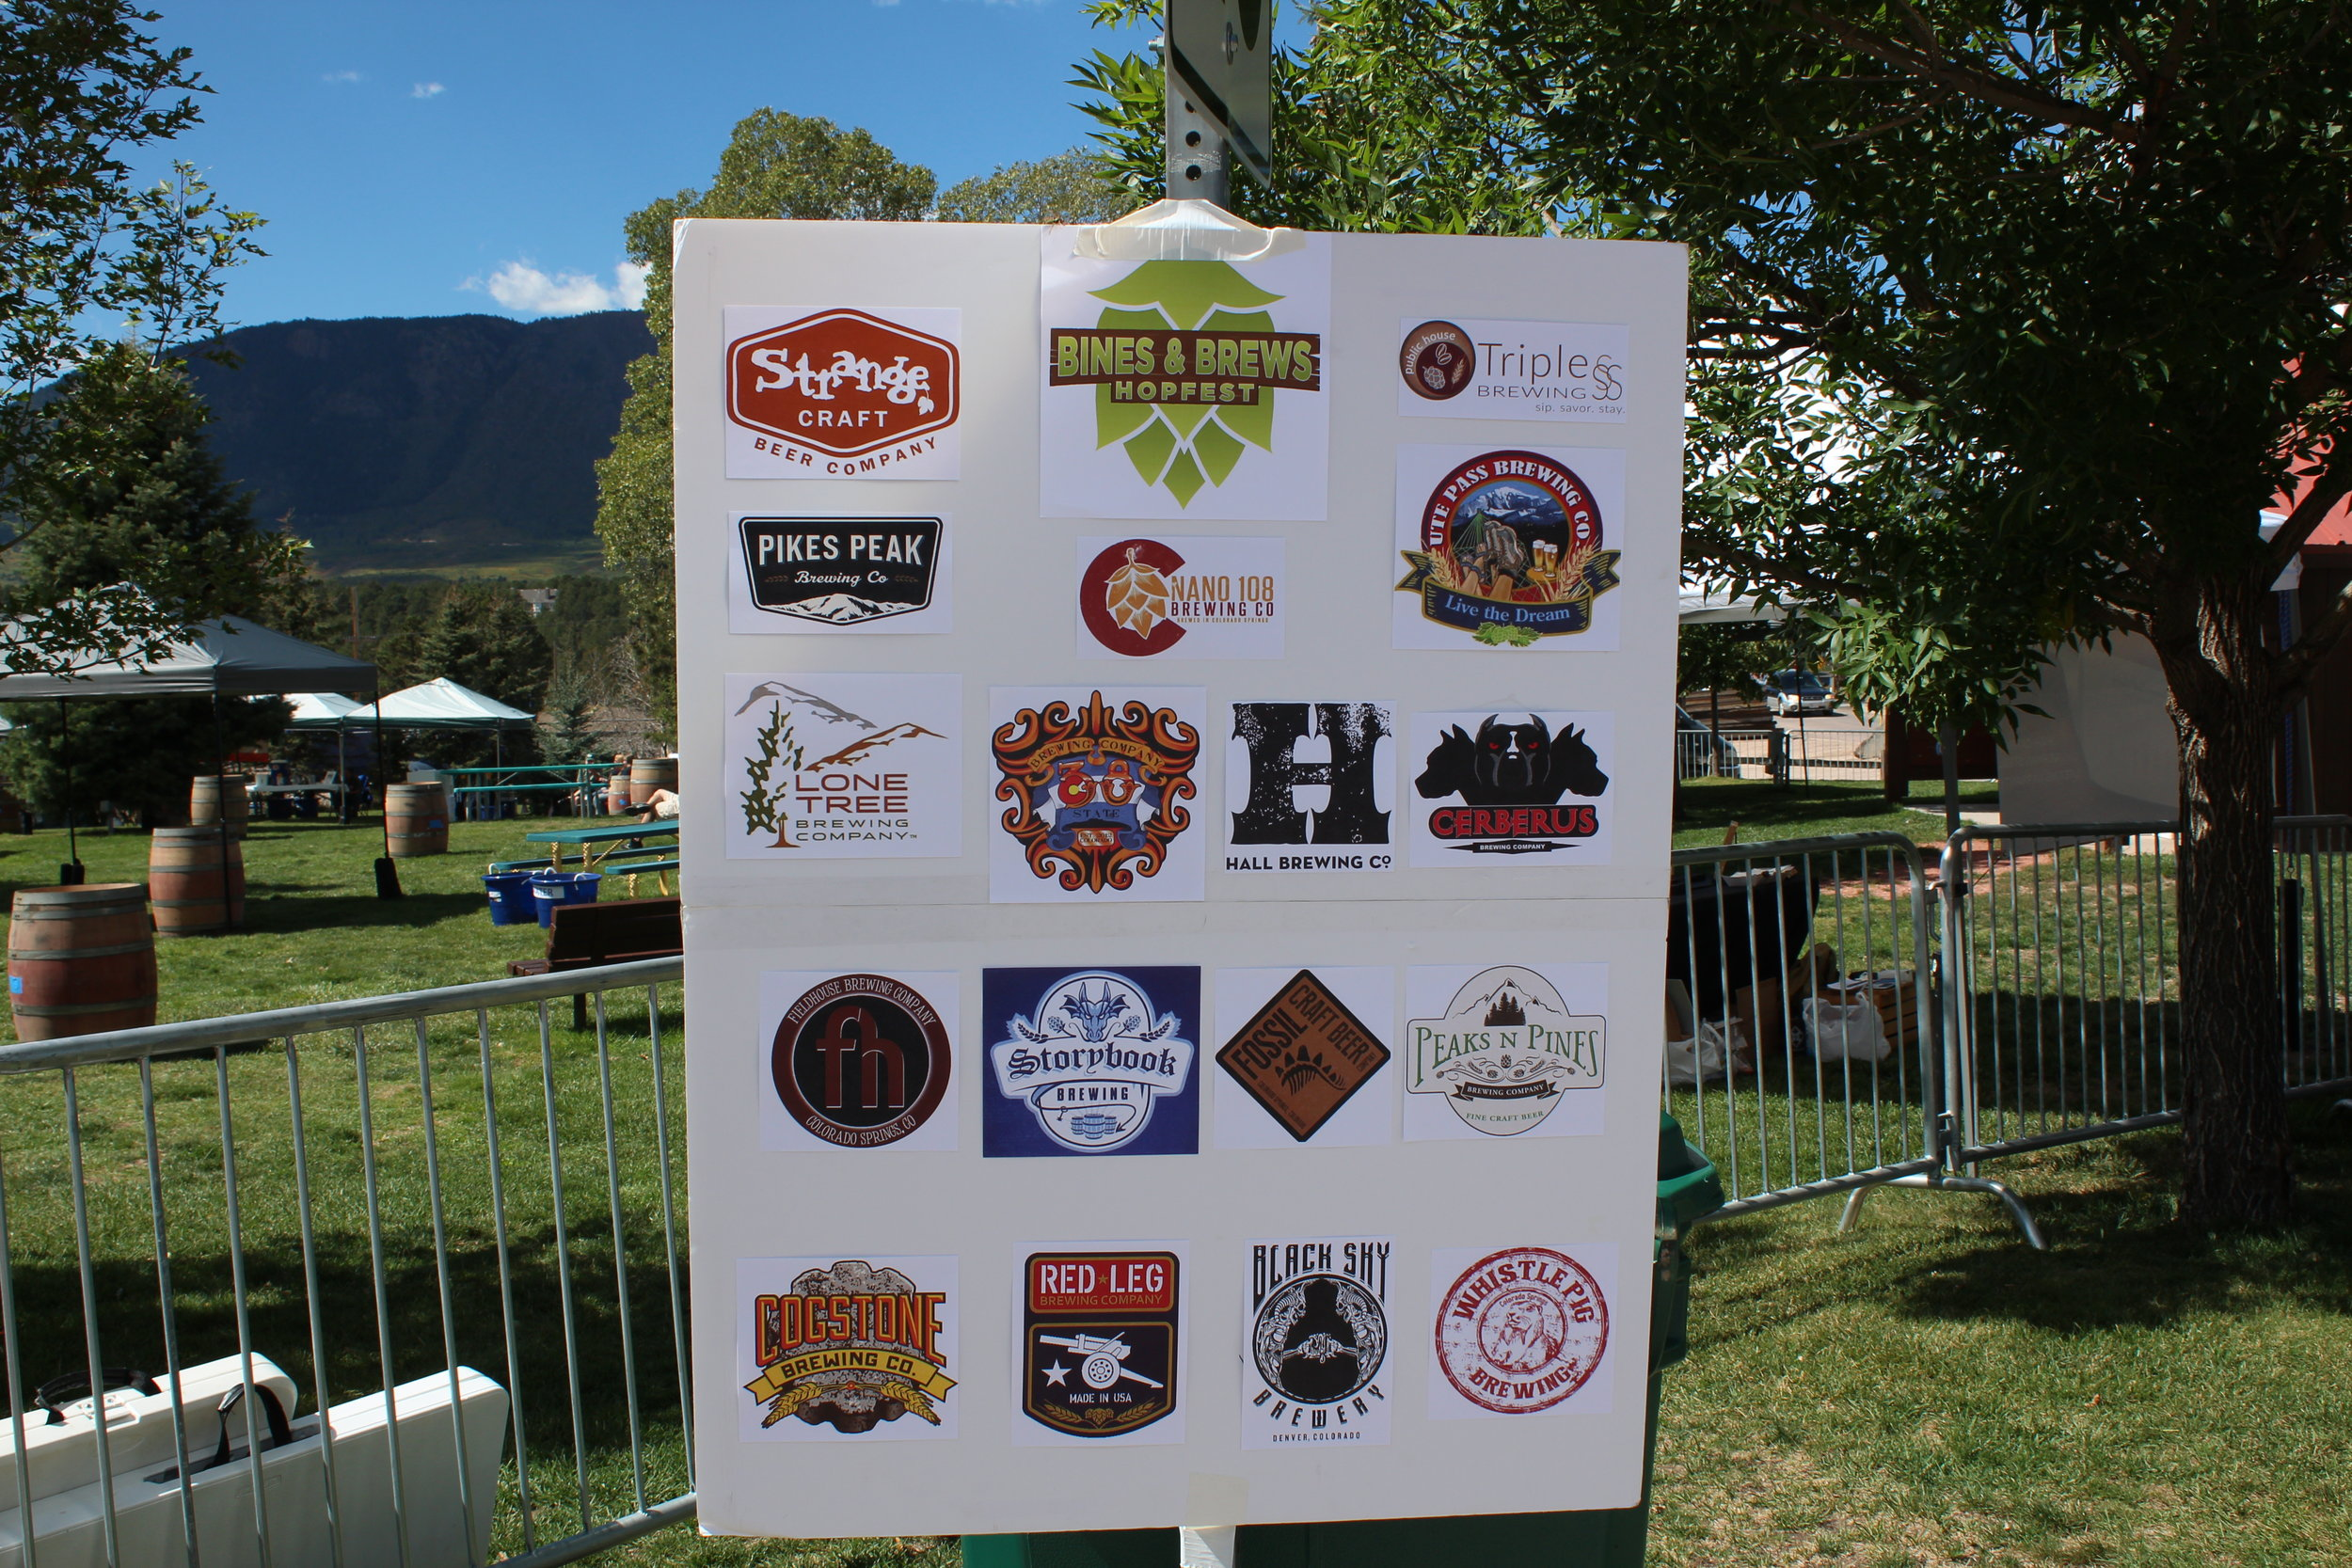 The 16 breweries (and one distillery) in attendance.